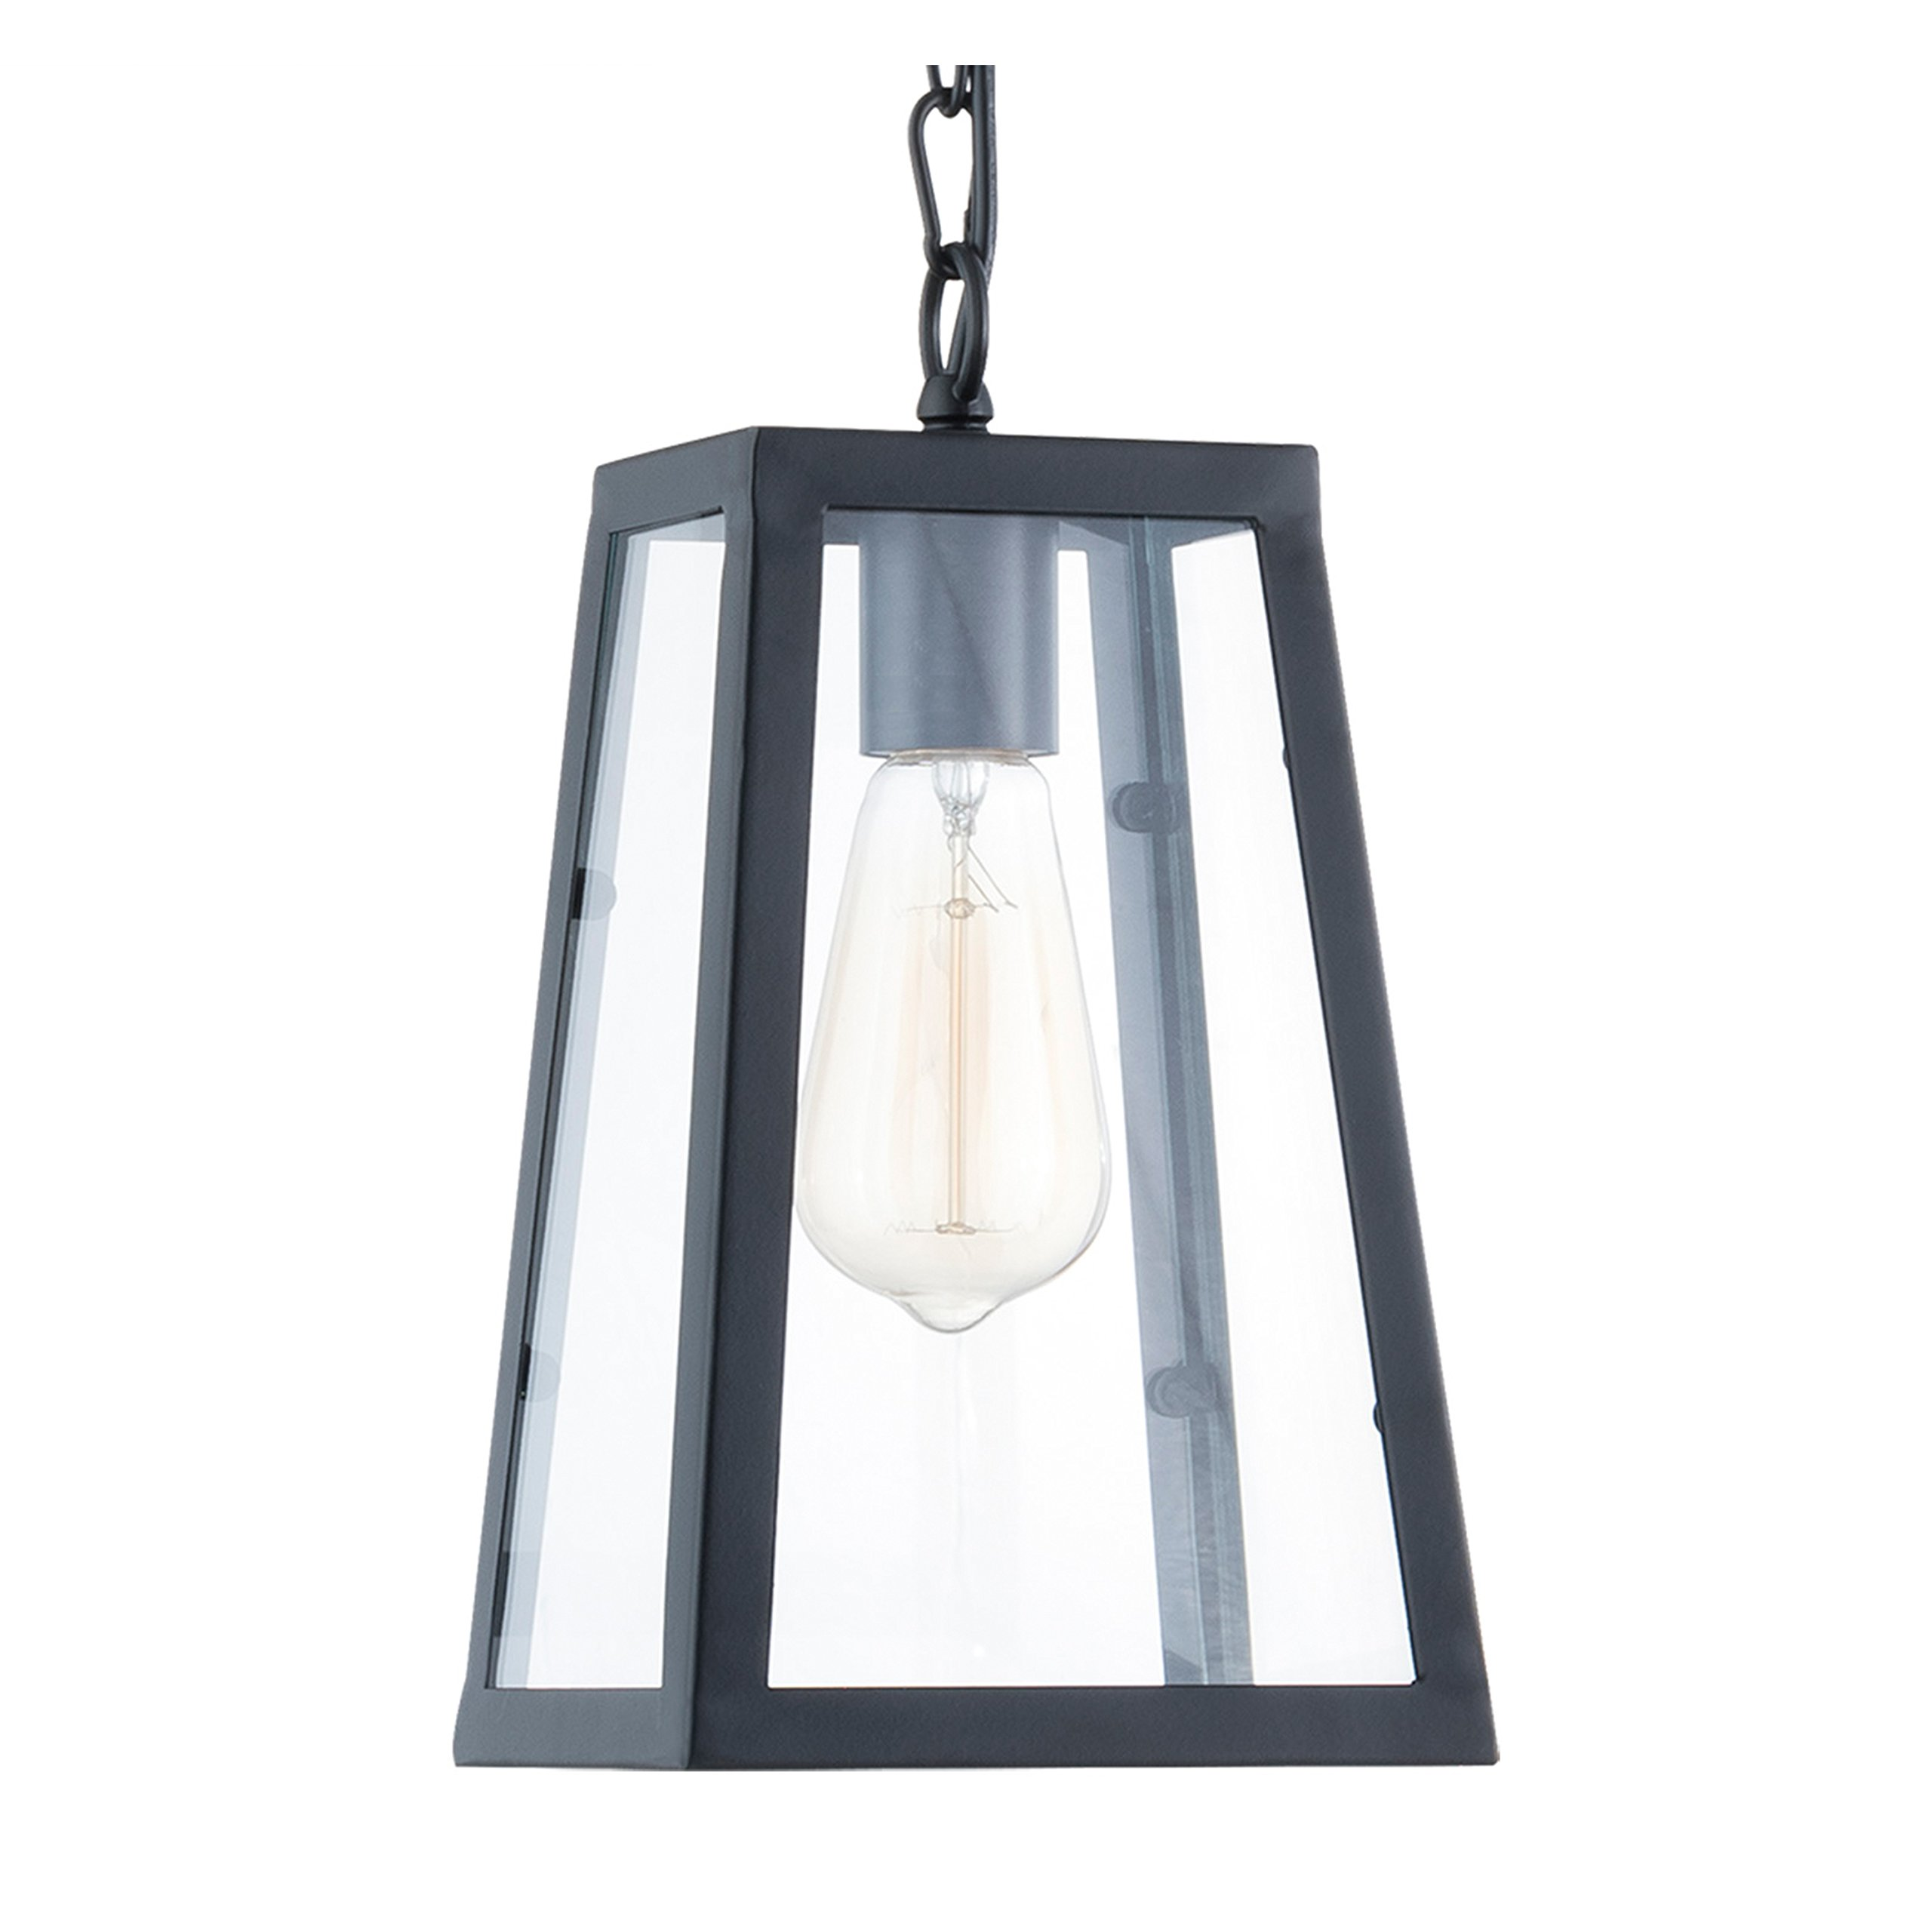 Light Society Serendipity Mini Pendant Light, Matte Black Shade with Clear Glass Panels, Vintage Modern Industrial Lighting Fixture (LS-C113)